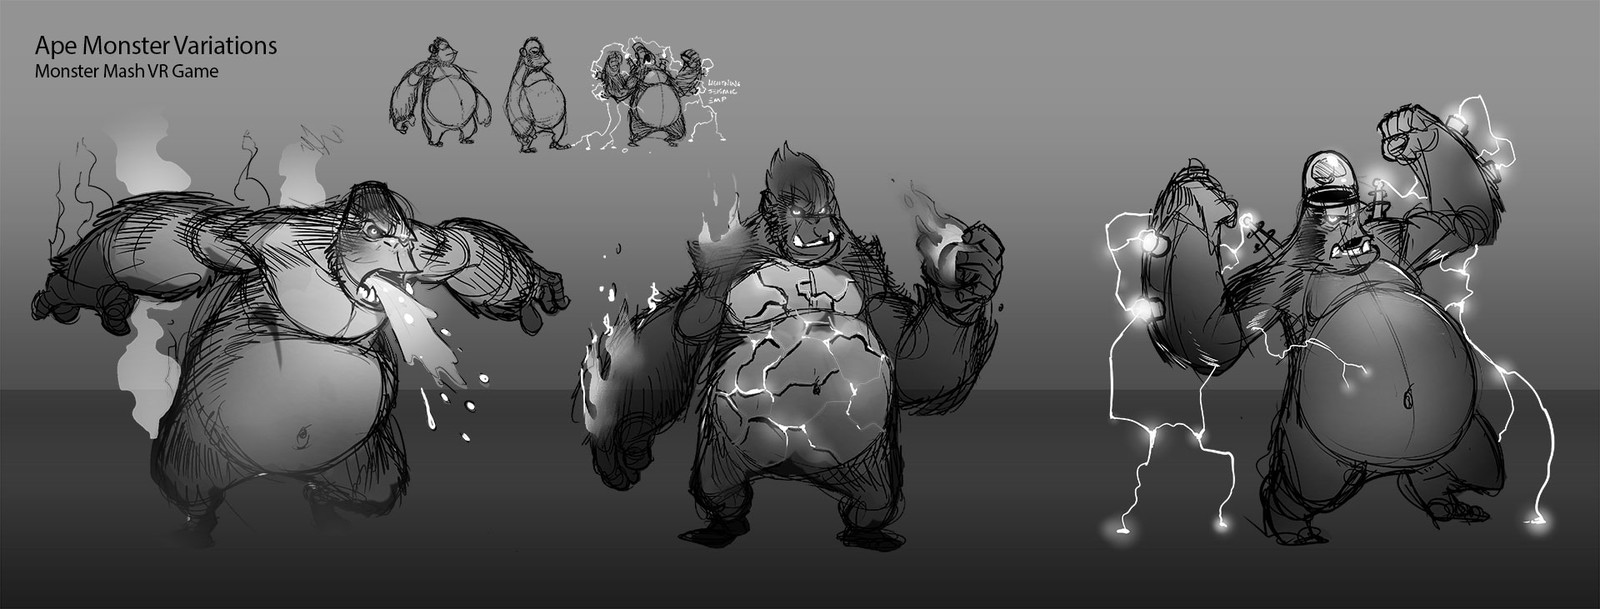 Variations on the classic King Kong creature, and ways we can push the concept.